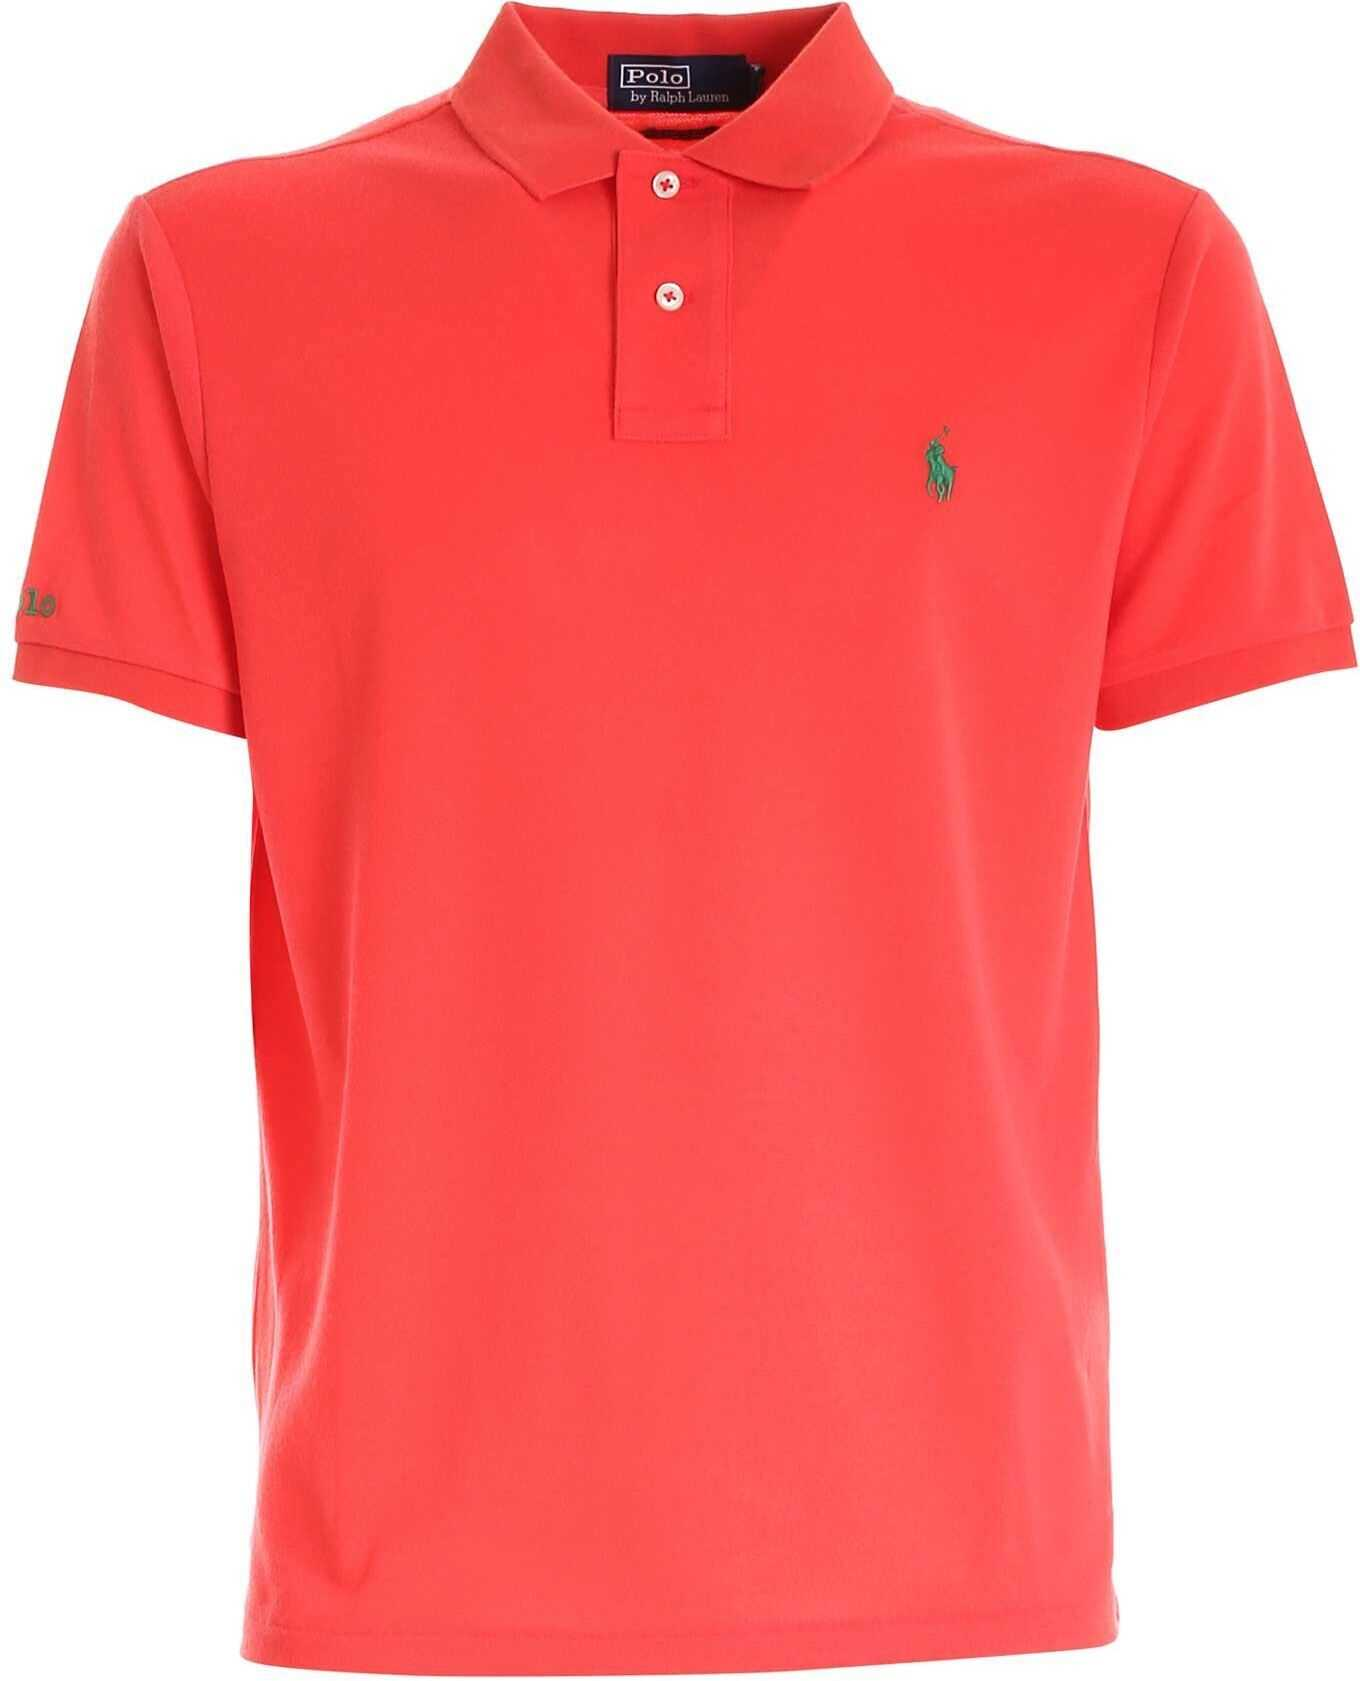 Ralph Lauren Green Embroidery Polo Shirt In Red Red imagine